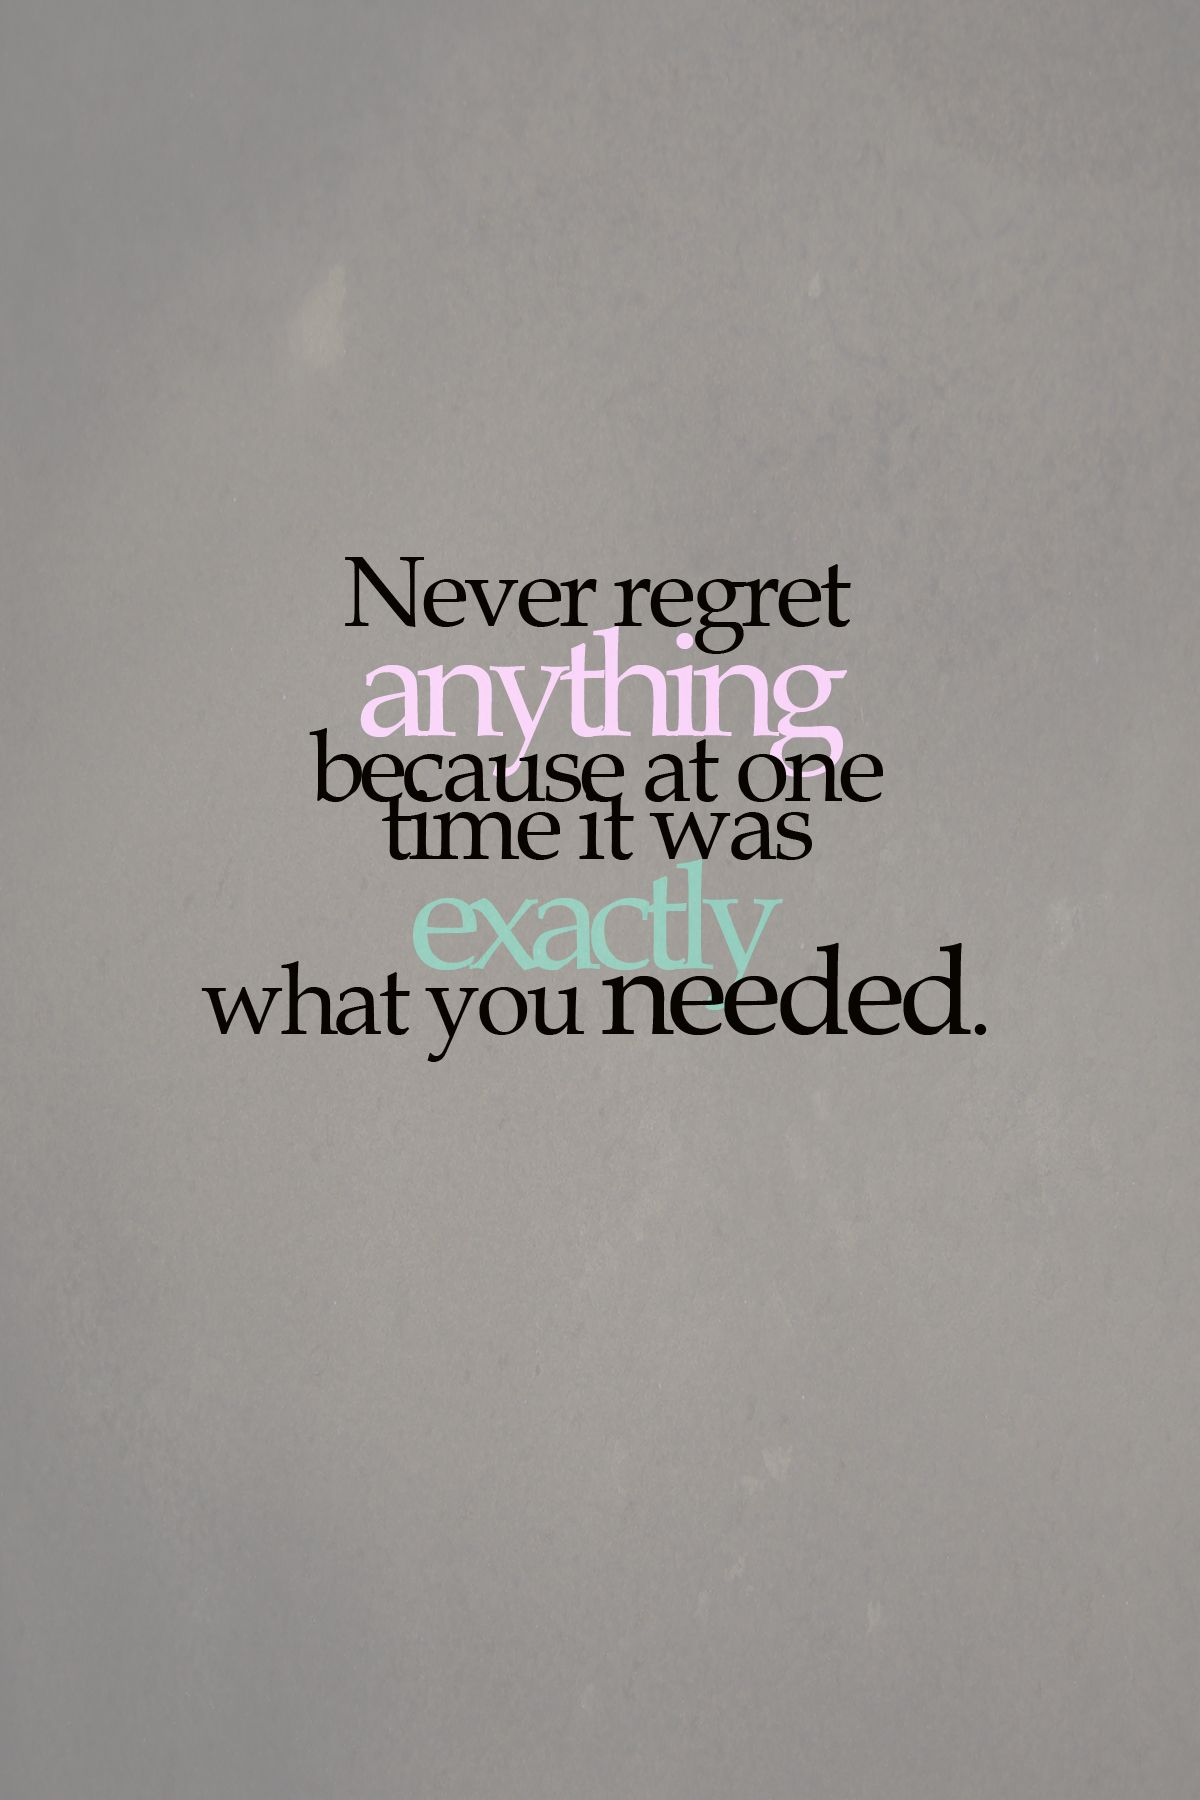 I do believe everything happens for a reason!